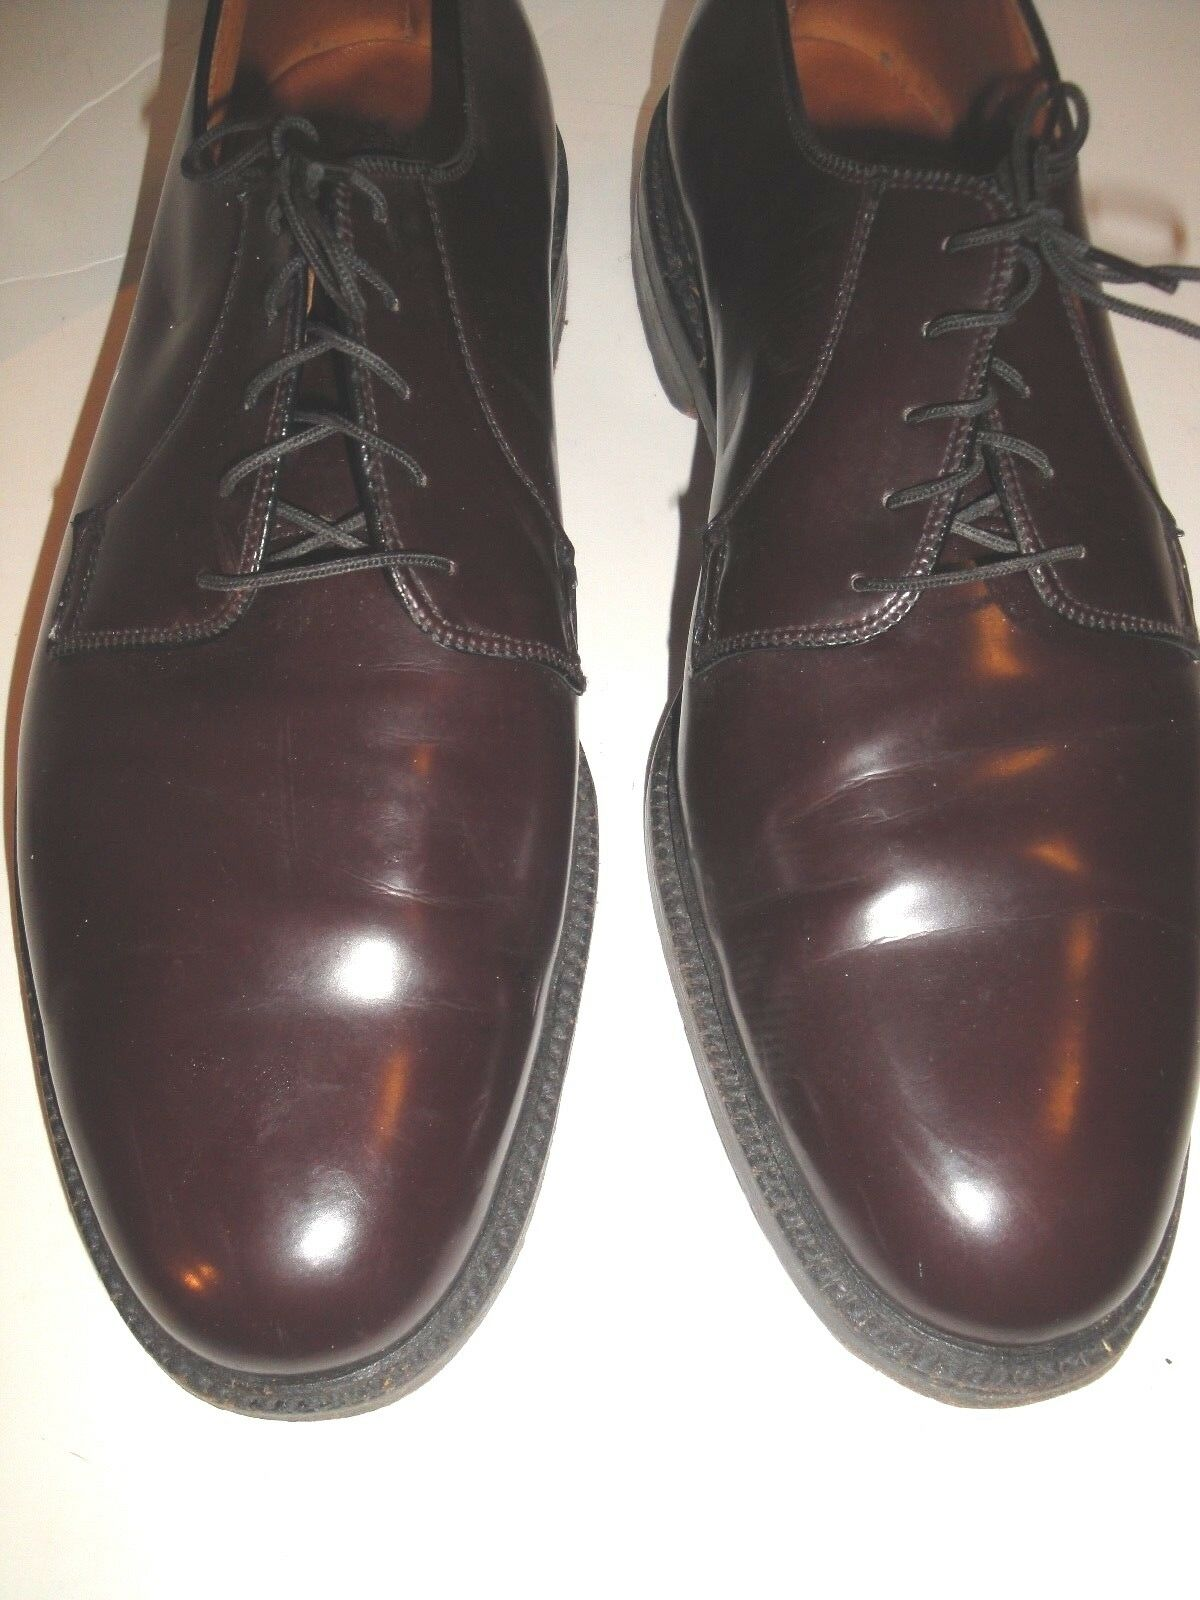 BOOT MASTER BY THOM MCAN BURGUNDY CORFAM OXFORD MENS SHOE SIZE 11 M